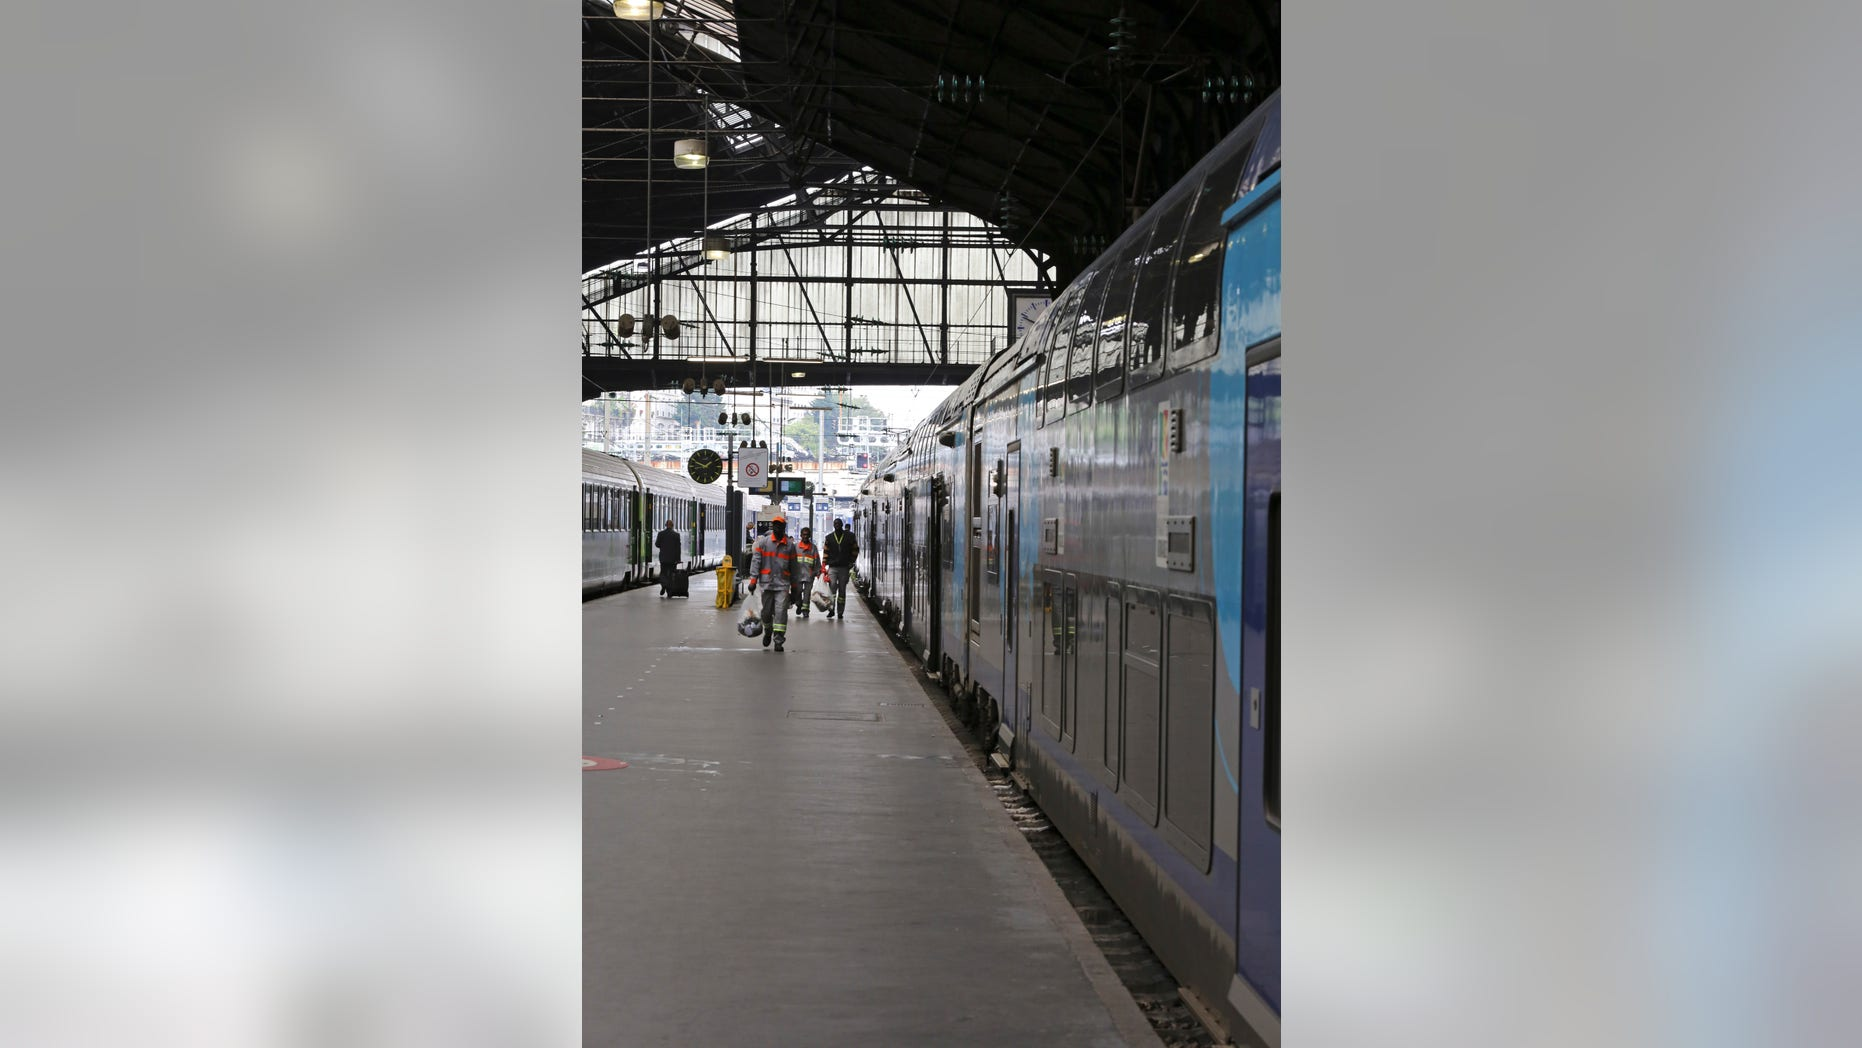 May 21, 2014: A Regional Express Train, or TER, is sationed along a platform at the Saint Lazare station in Paris.